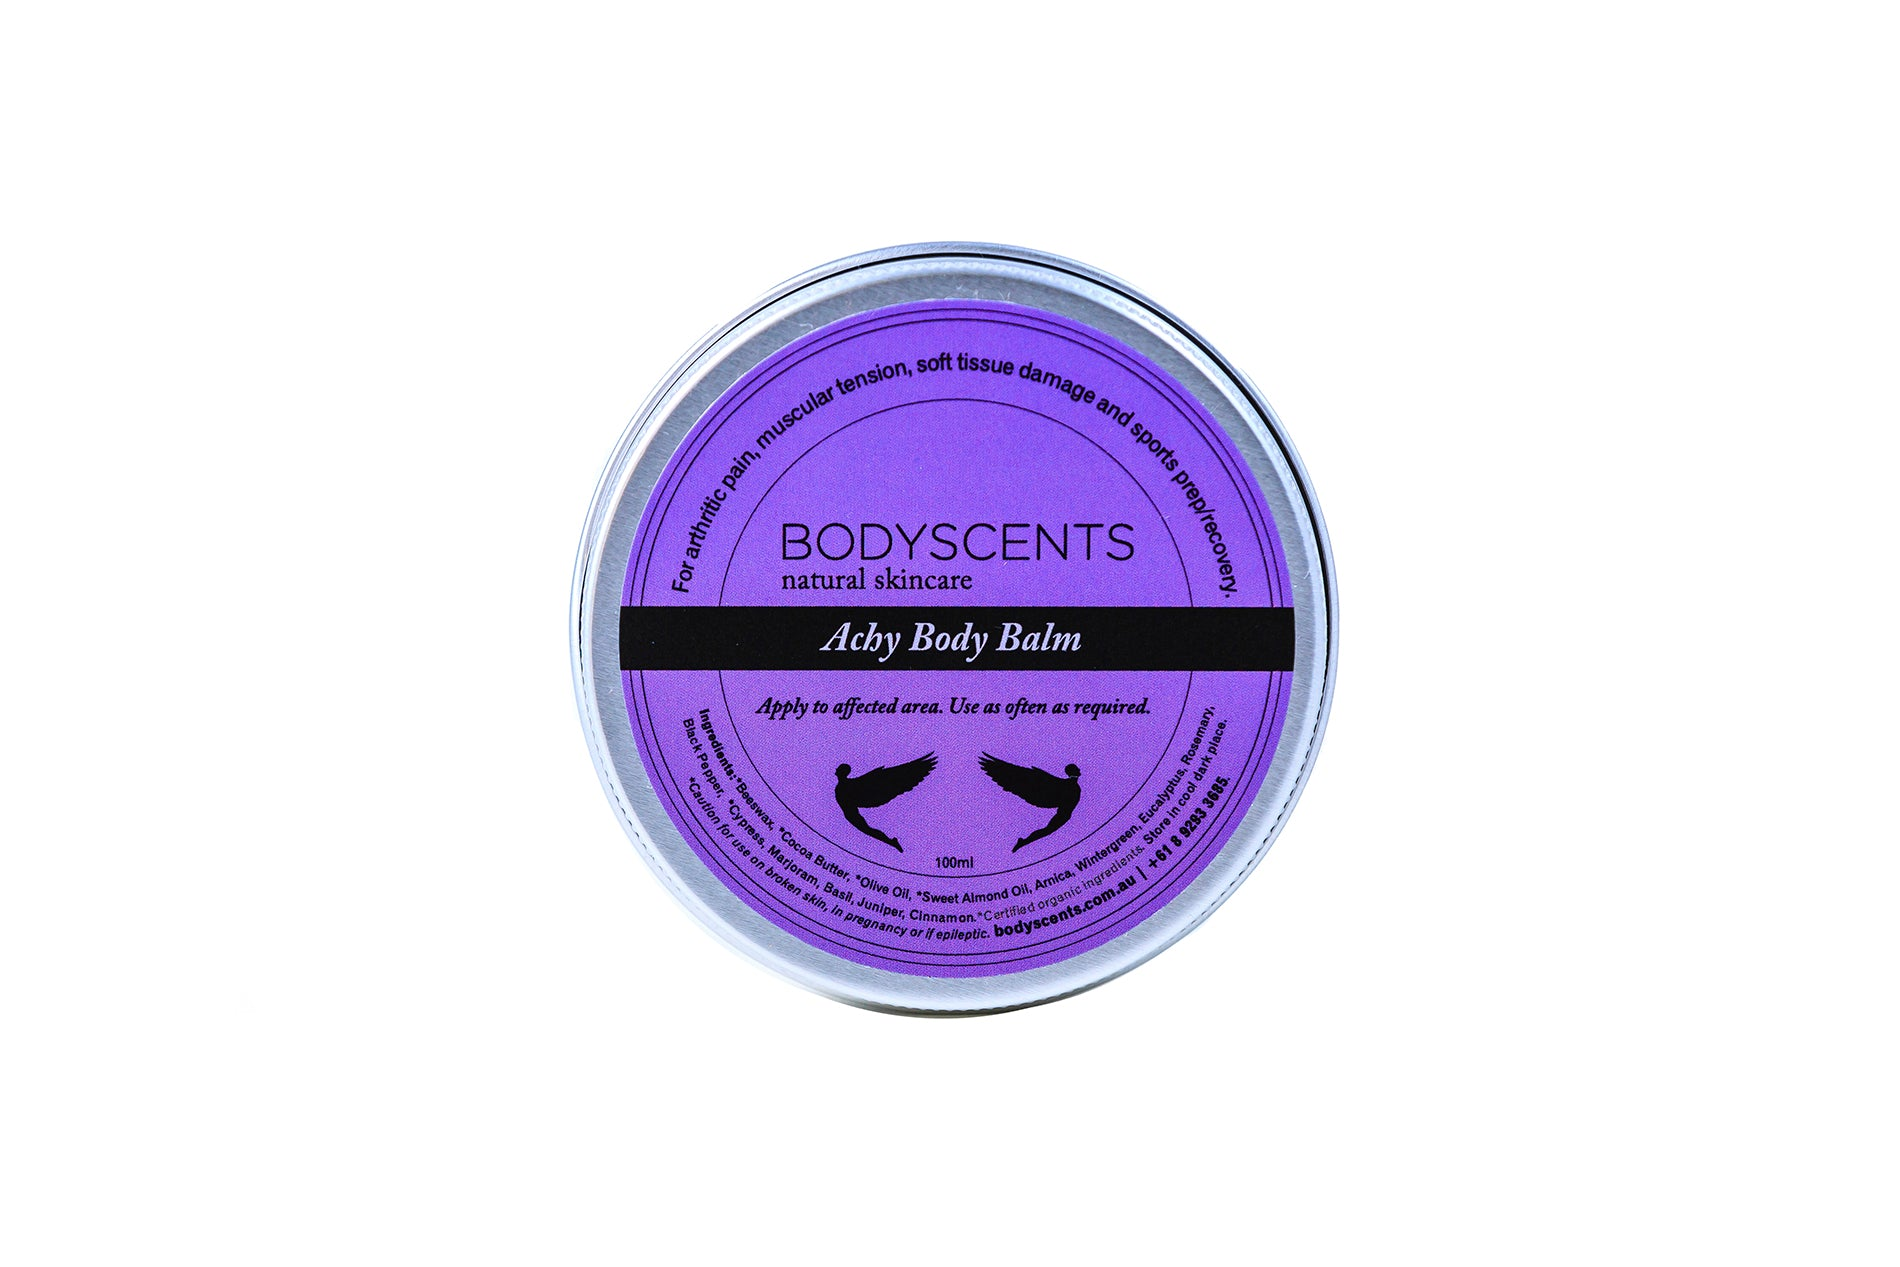 Achy Body Balm Pain Cream  - Bodyscents